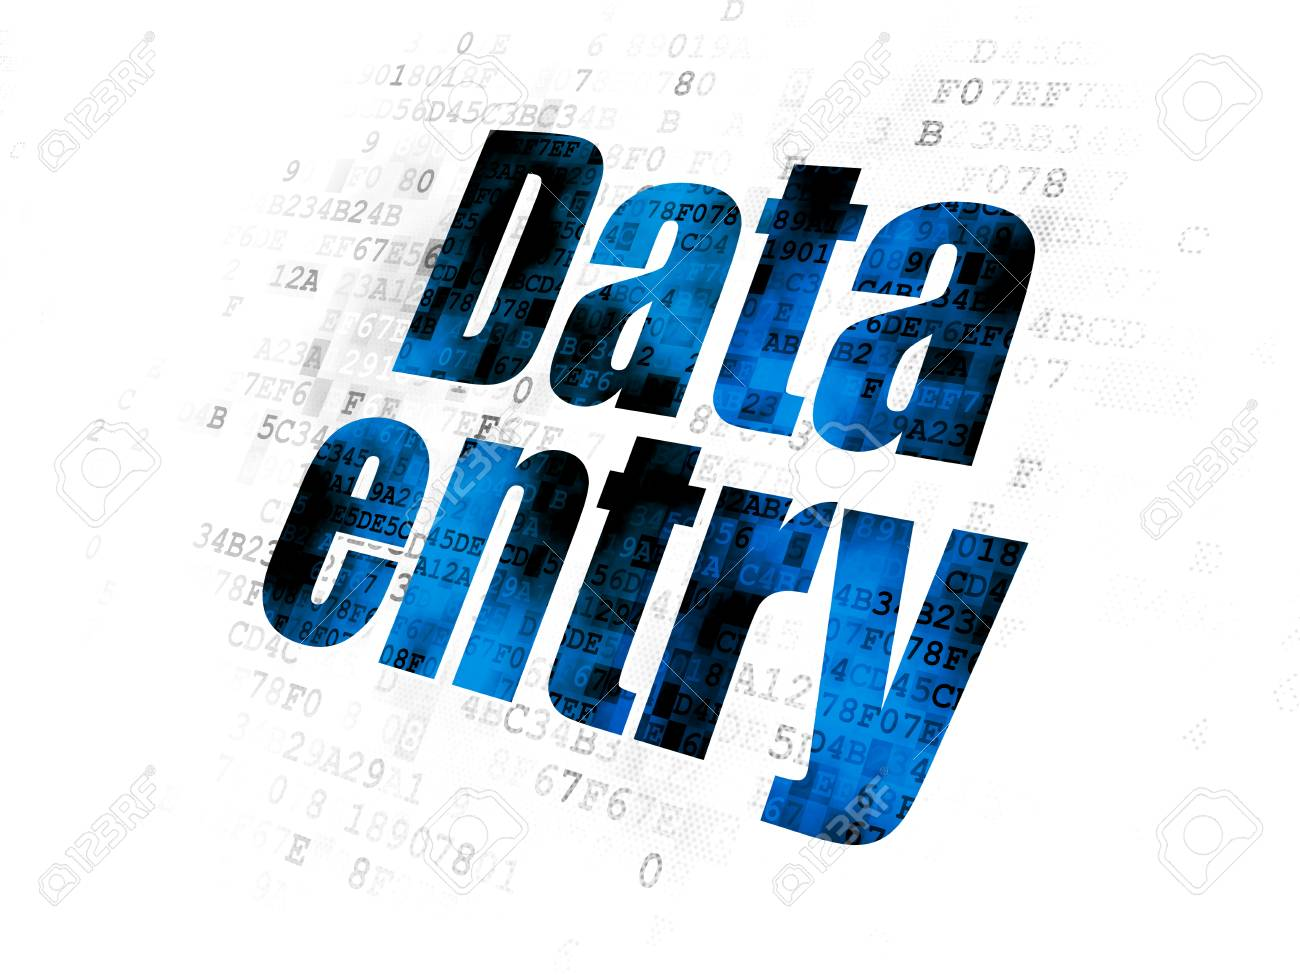 We Provide Our Services in Data entry related projects.